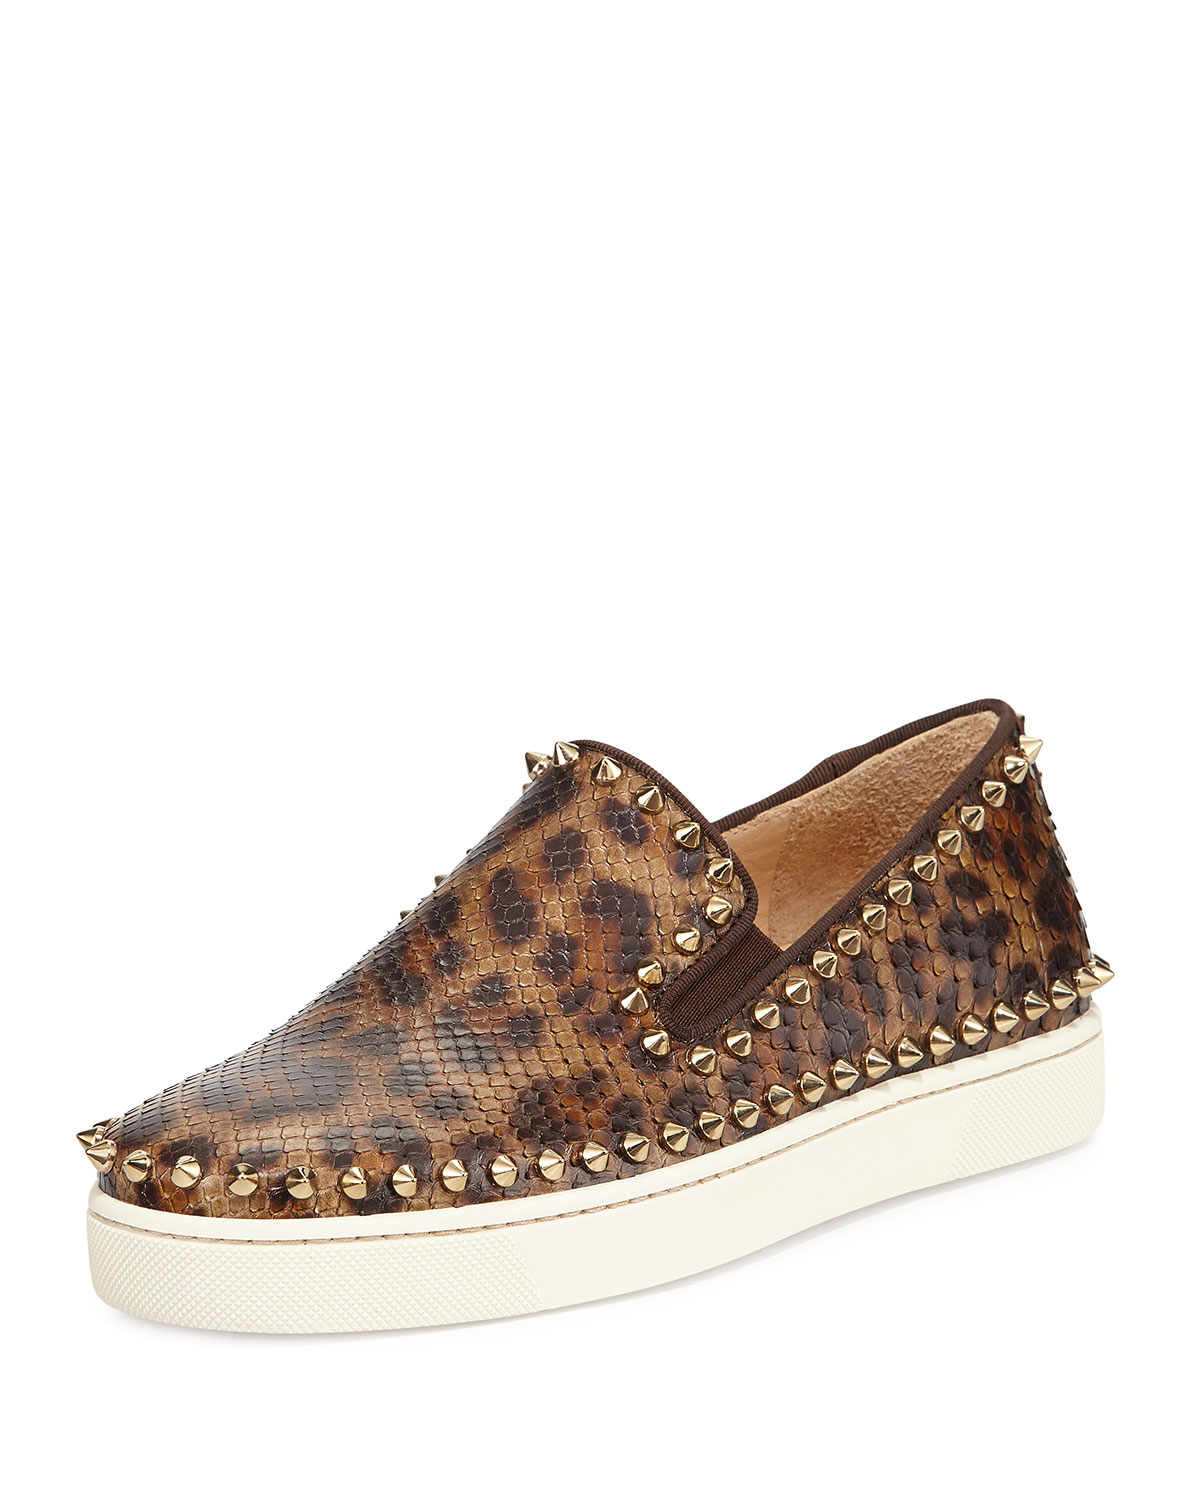 christian louboutin shoes leopard - Obsidian Wellness Centre